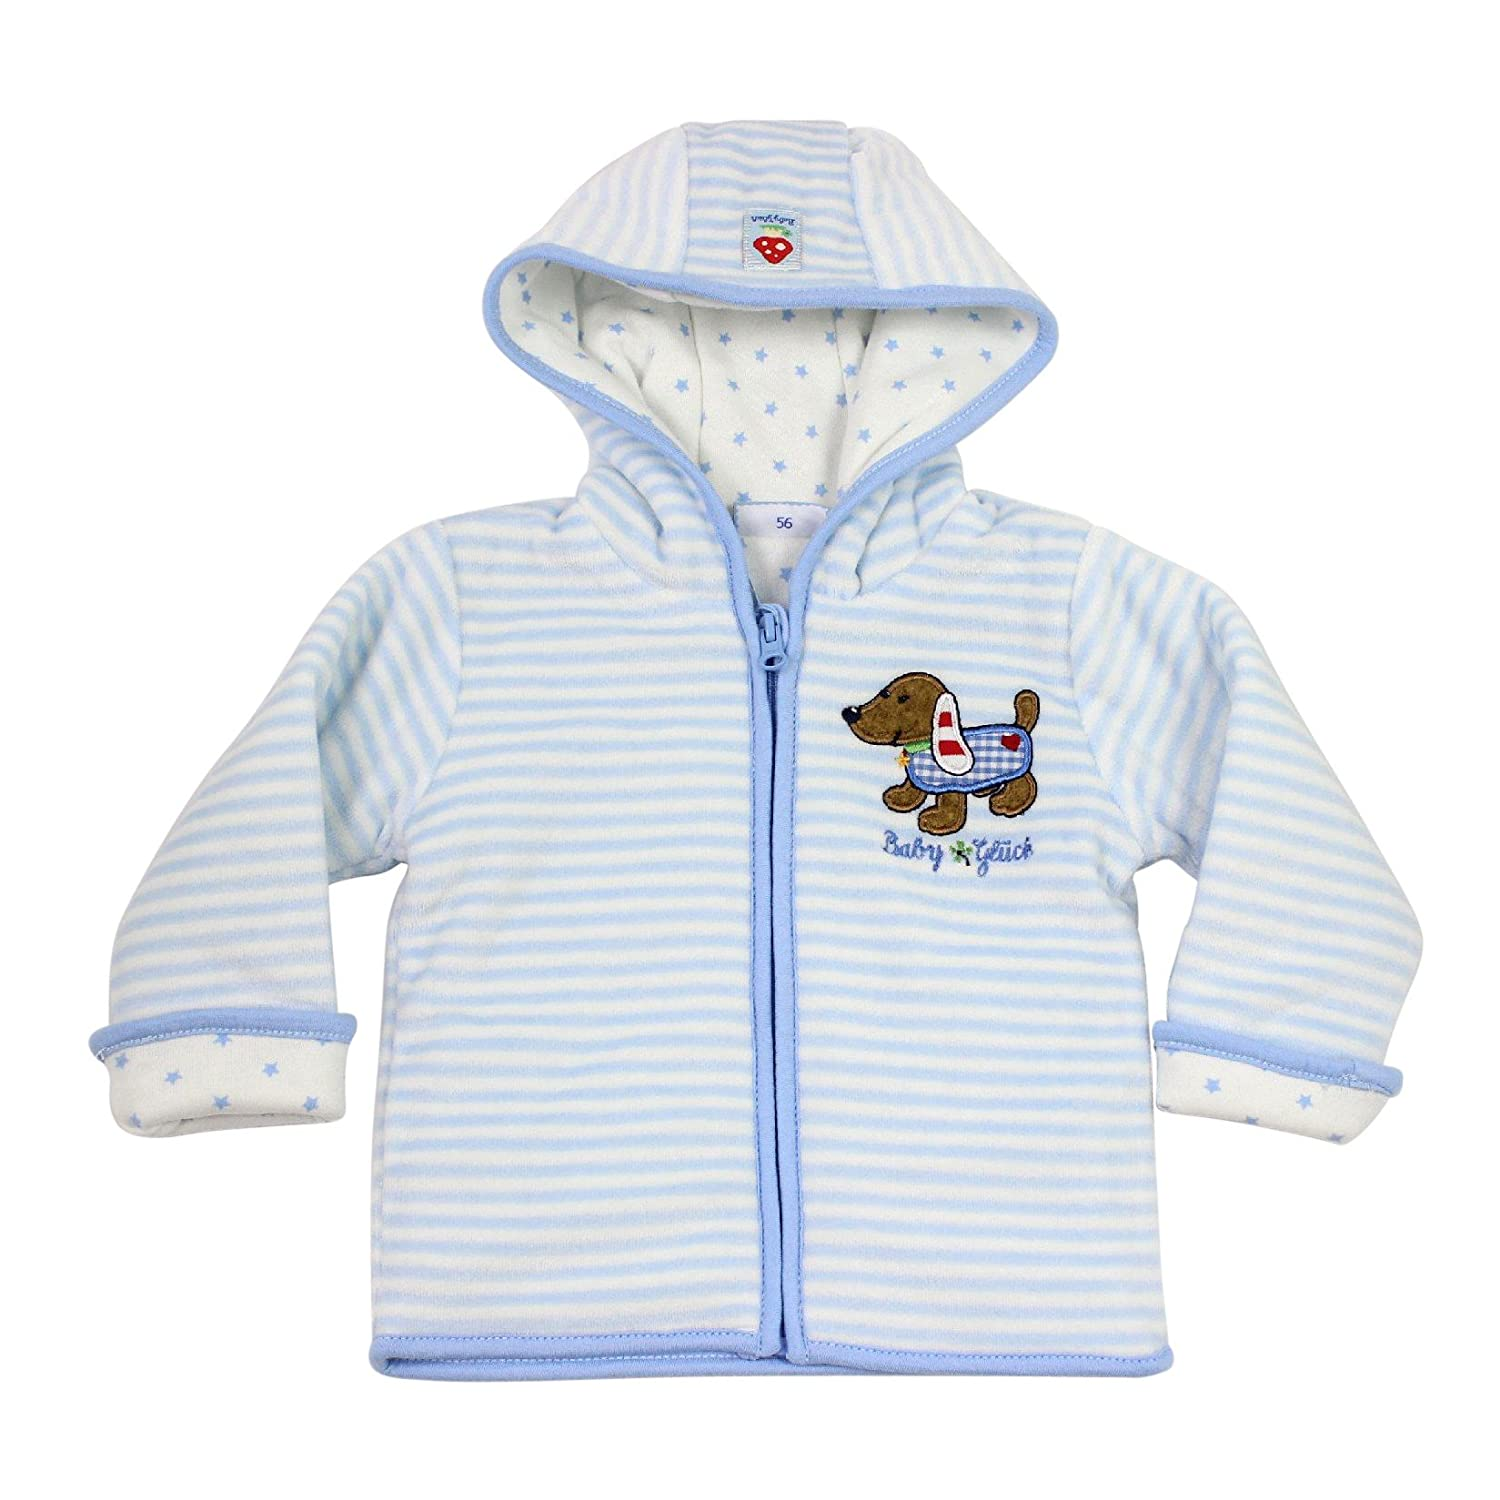 Salt and Pepper - Baby Jungen Sweatjacke gestreift Hund, hellblau 55818122